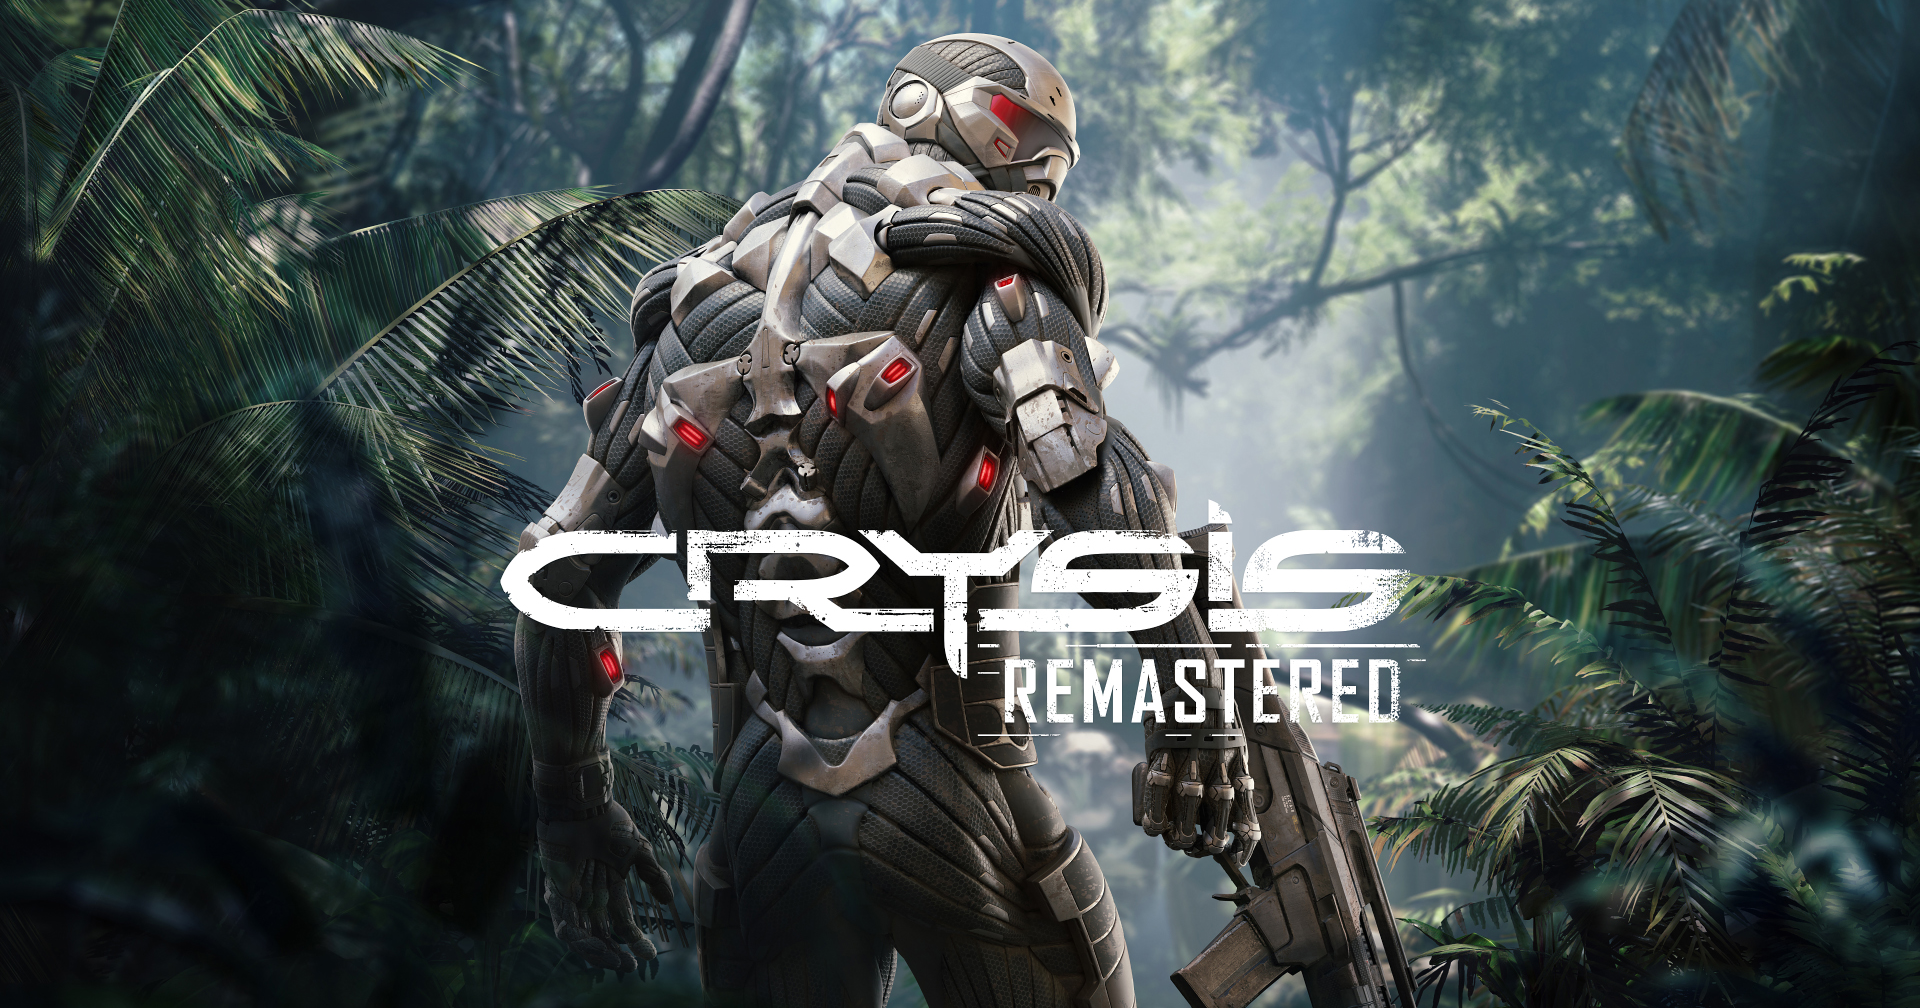 Crysis Remastered: Patch should improve performance